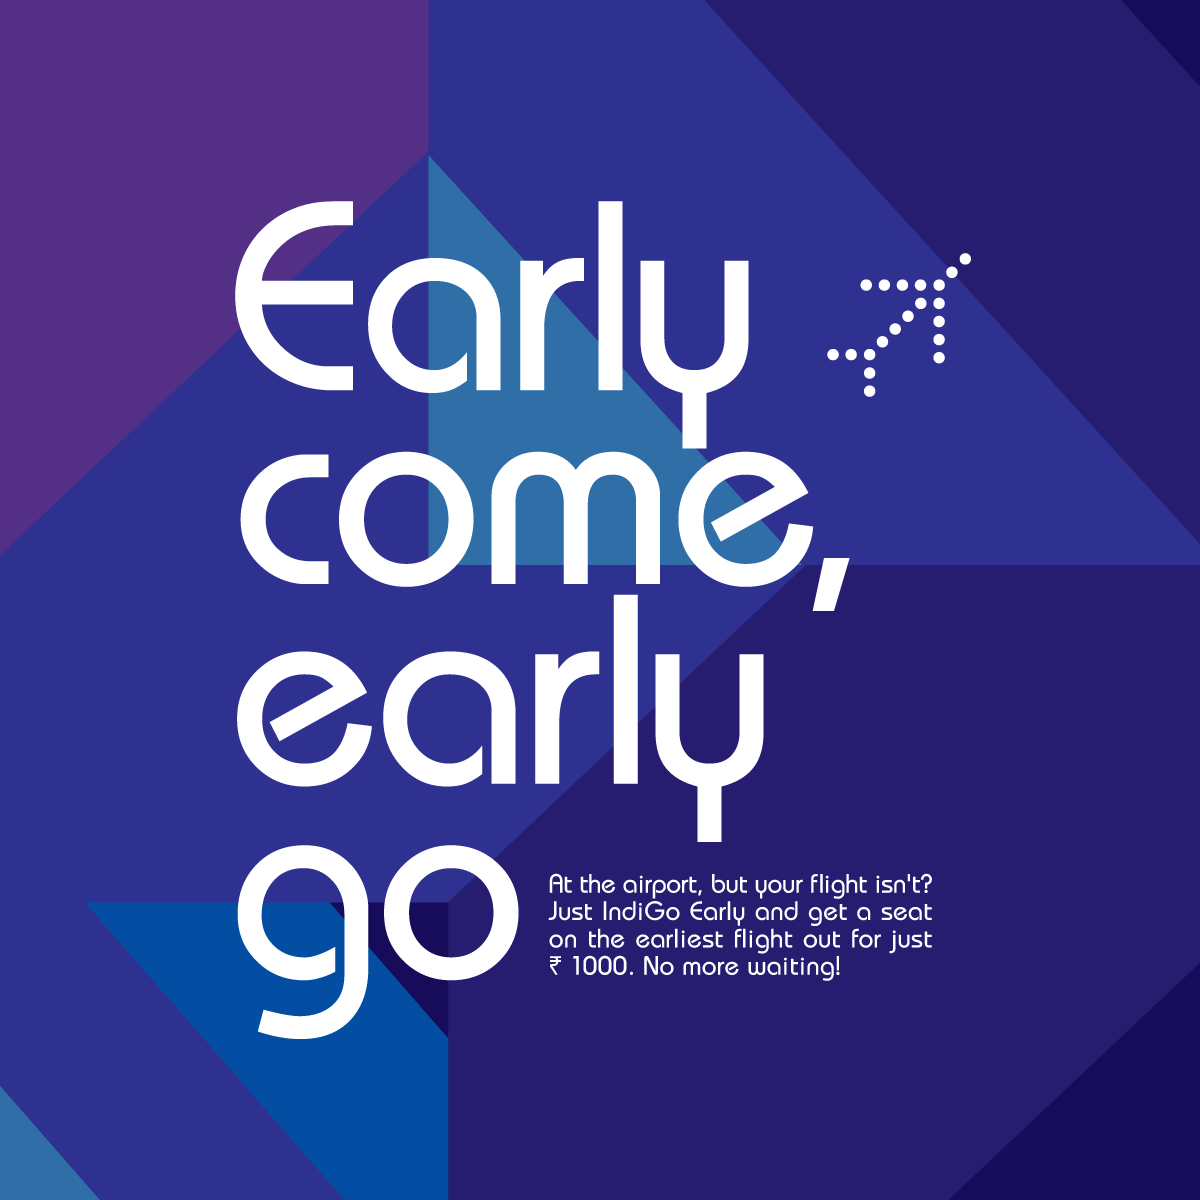 Indigo Early Come Early Go Take an earlier flight at the airport by paying just Rs 1000